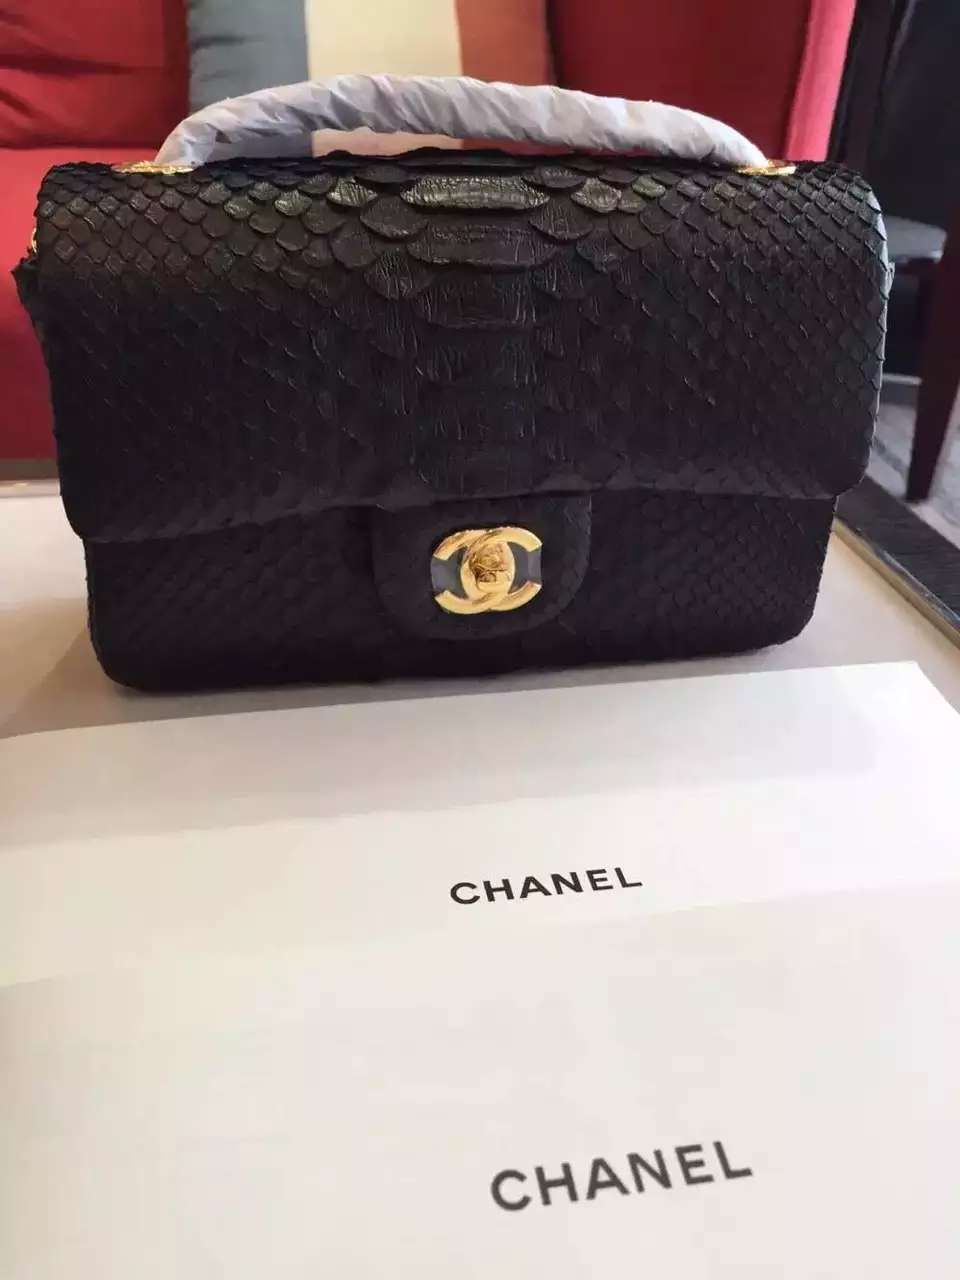 chanel Bag, ID : 49248(FORSALE:a@yybags.com), house chanel, chanel mens briefcase bag, chanel discount purses, chanel label, chanel sale backpacks, chanel boutique online shopping, chanel discount designer bags, chanel luxury bags, chanel online boutique, chanel luxury briefcases, chanel waterproof backpack, chanel backpack for laptop #chanelBag #chanel #chanel #cheap #designer #purses